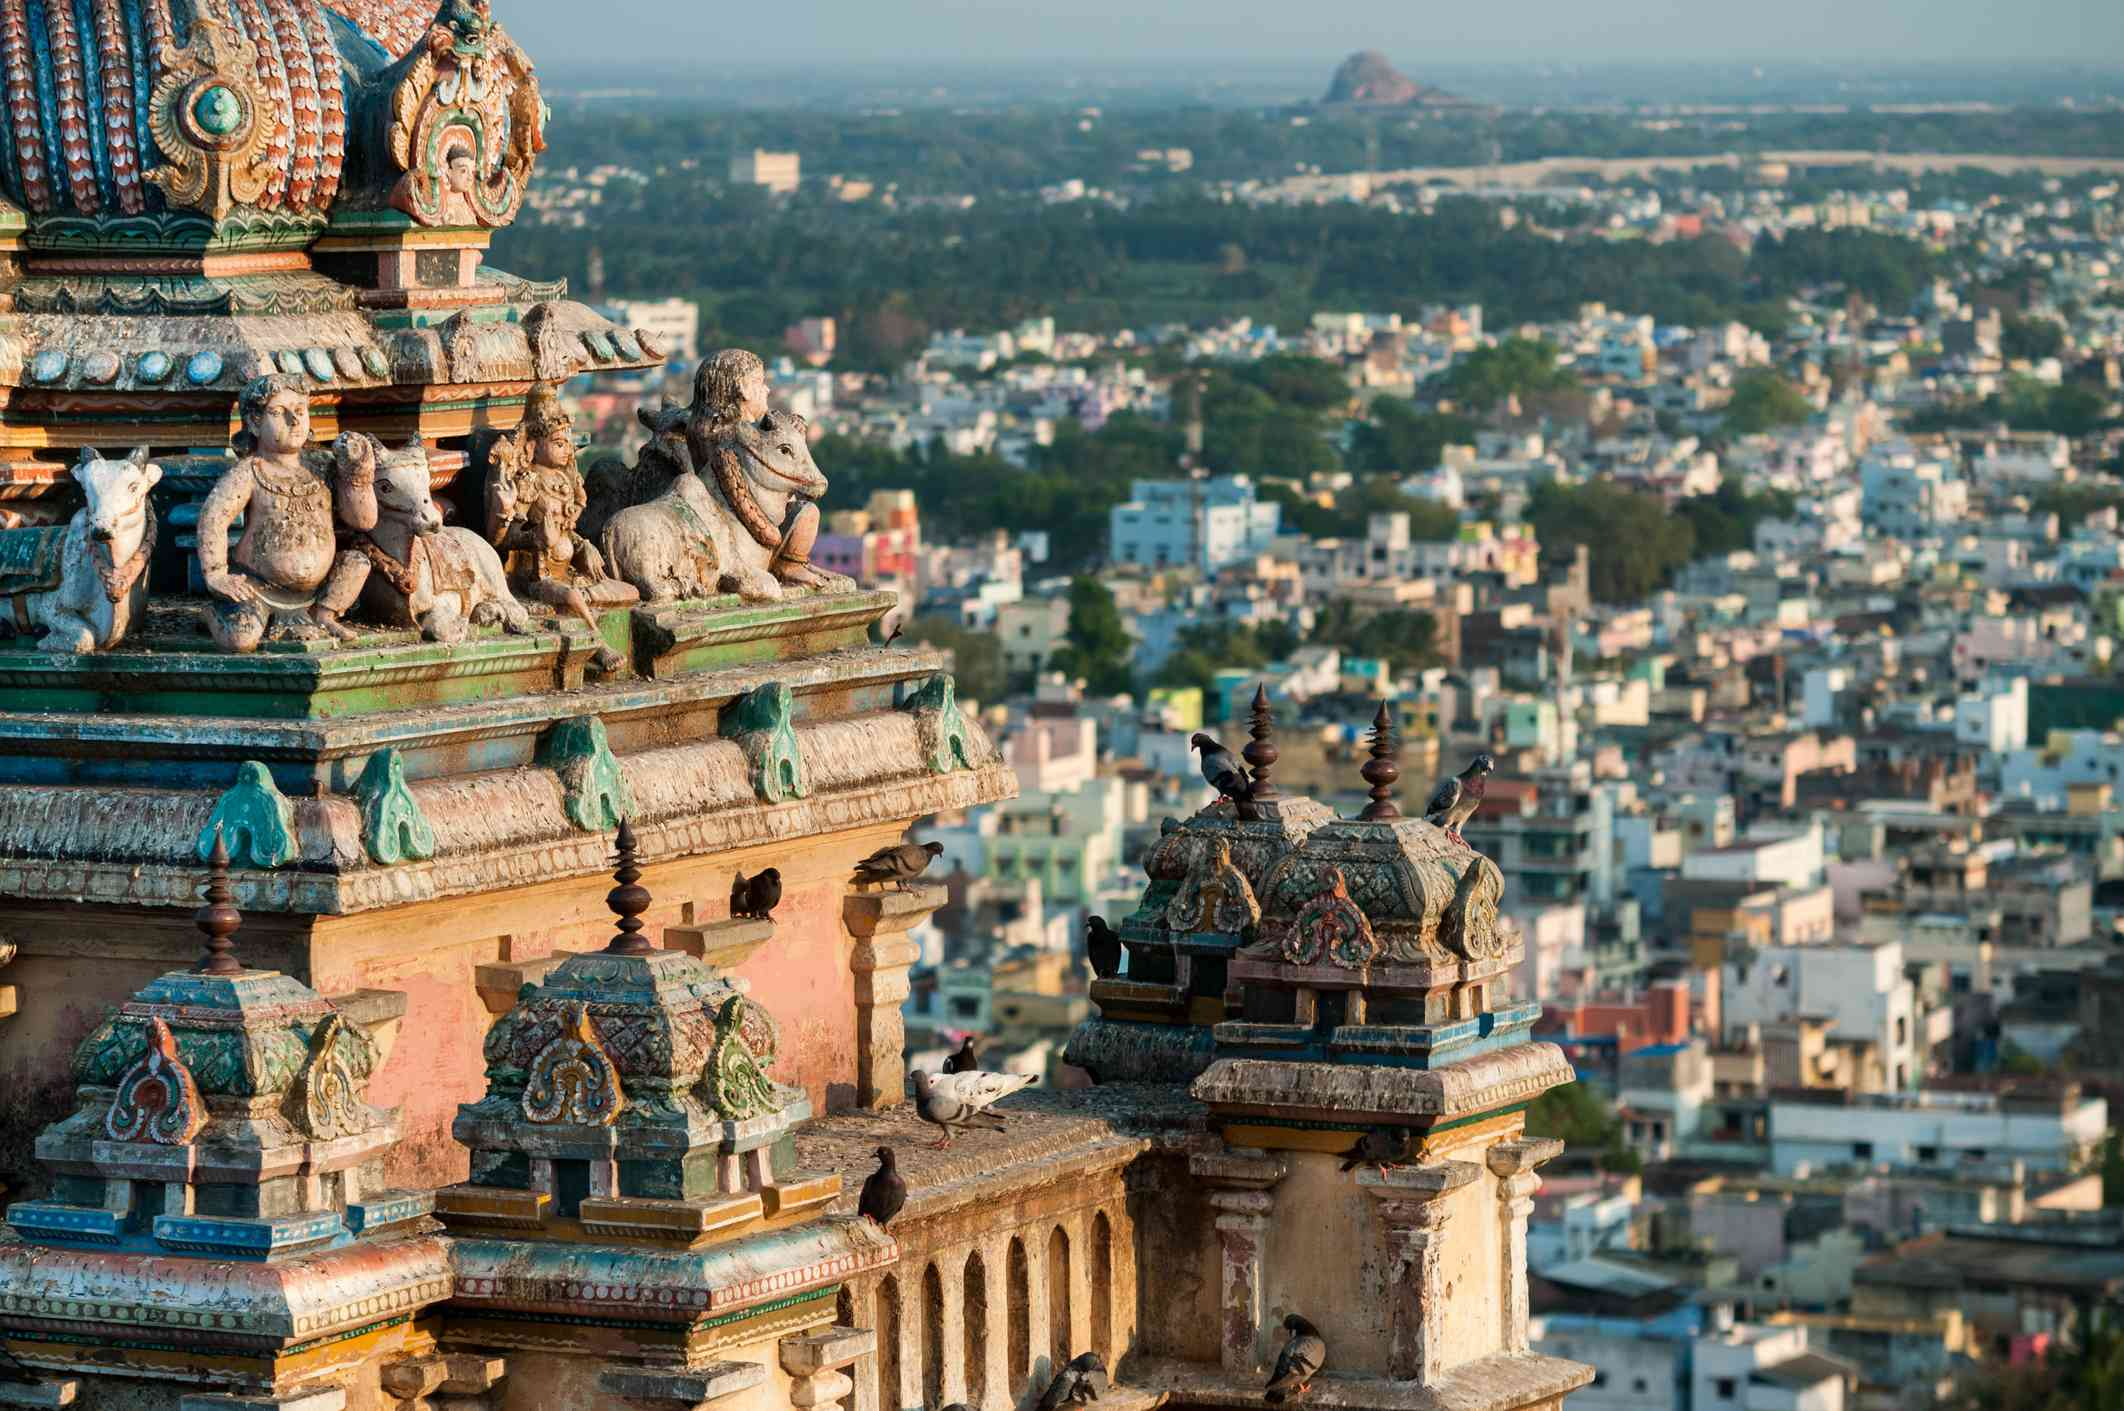 Overview of the Trichy city from Rockfort Temple, Tamil Nadu